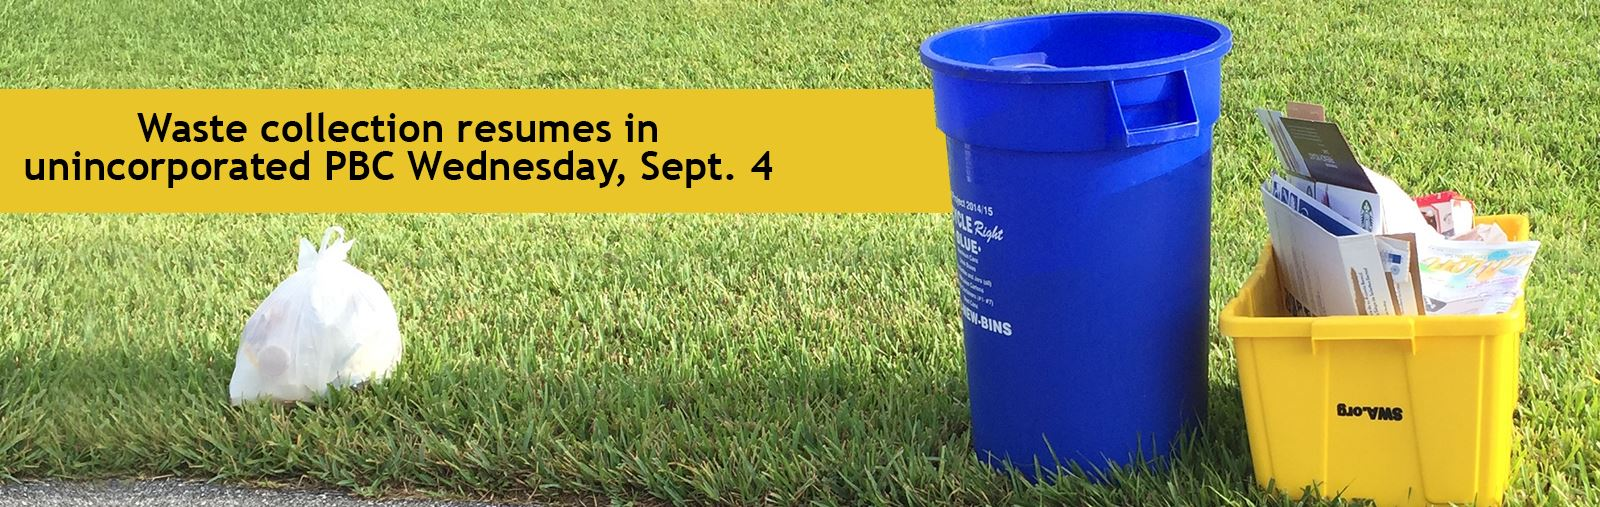 Waste Collection Resumes Wednesday, Sept. 4